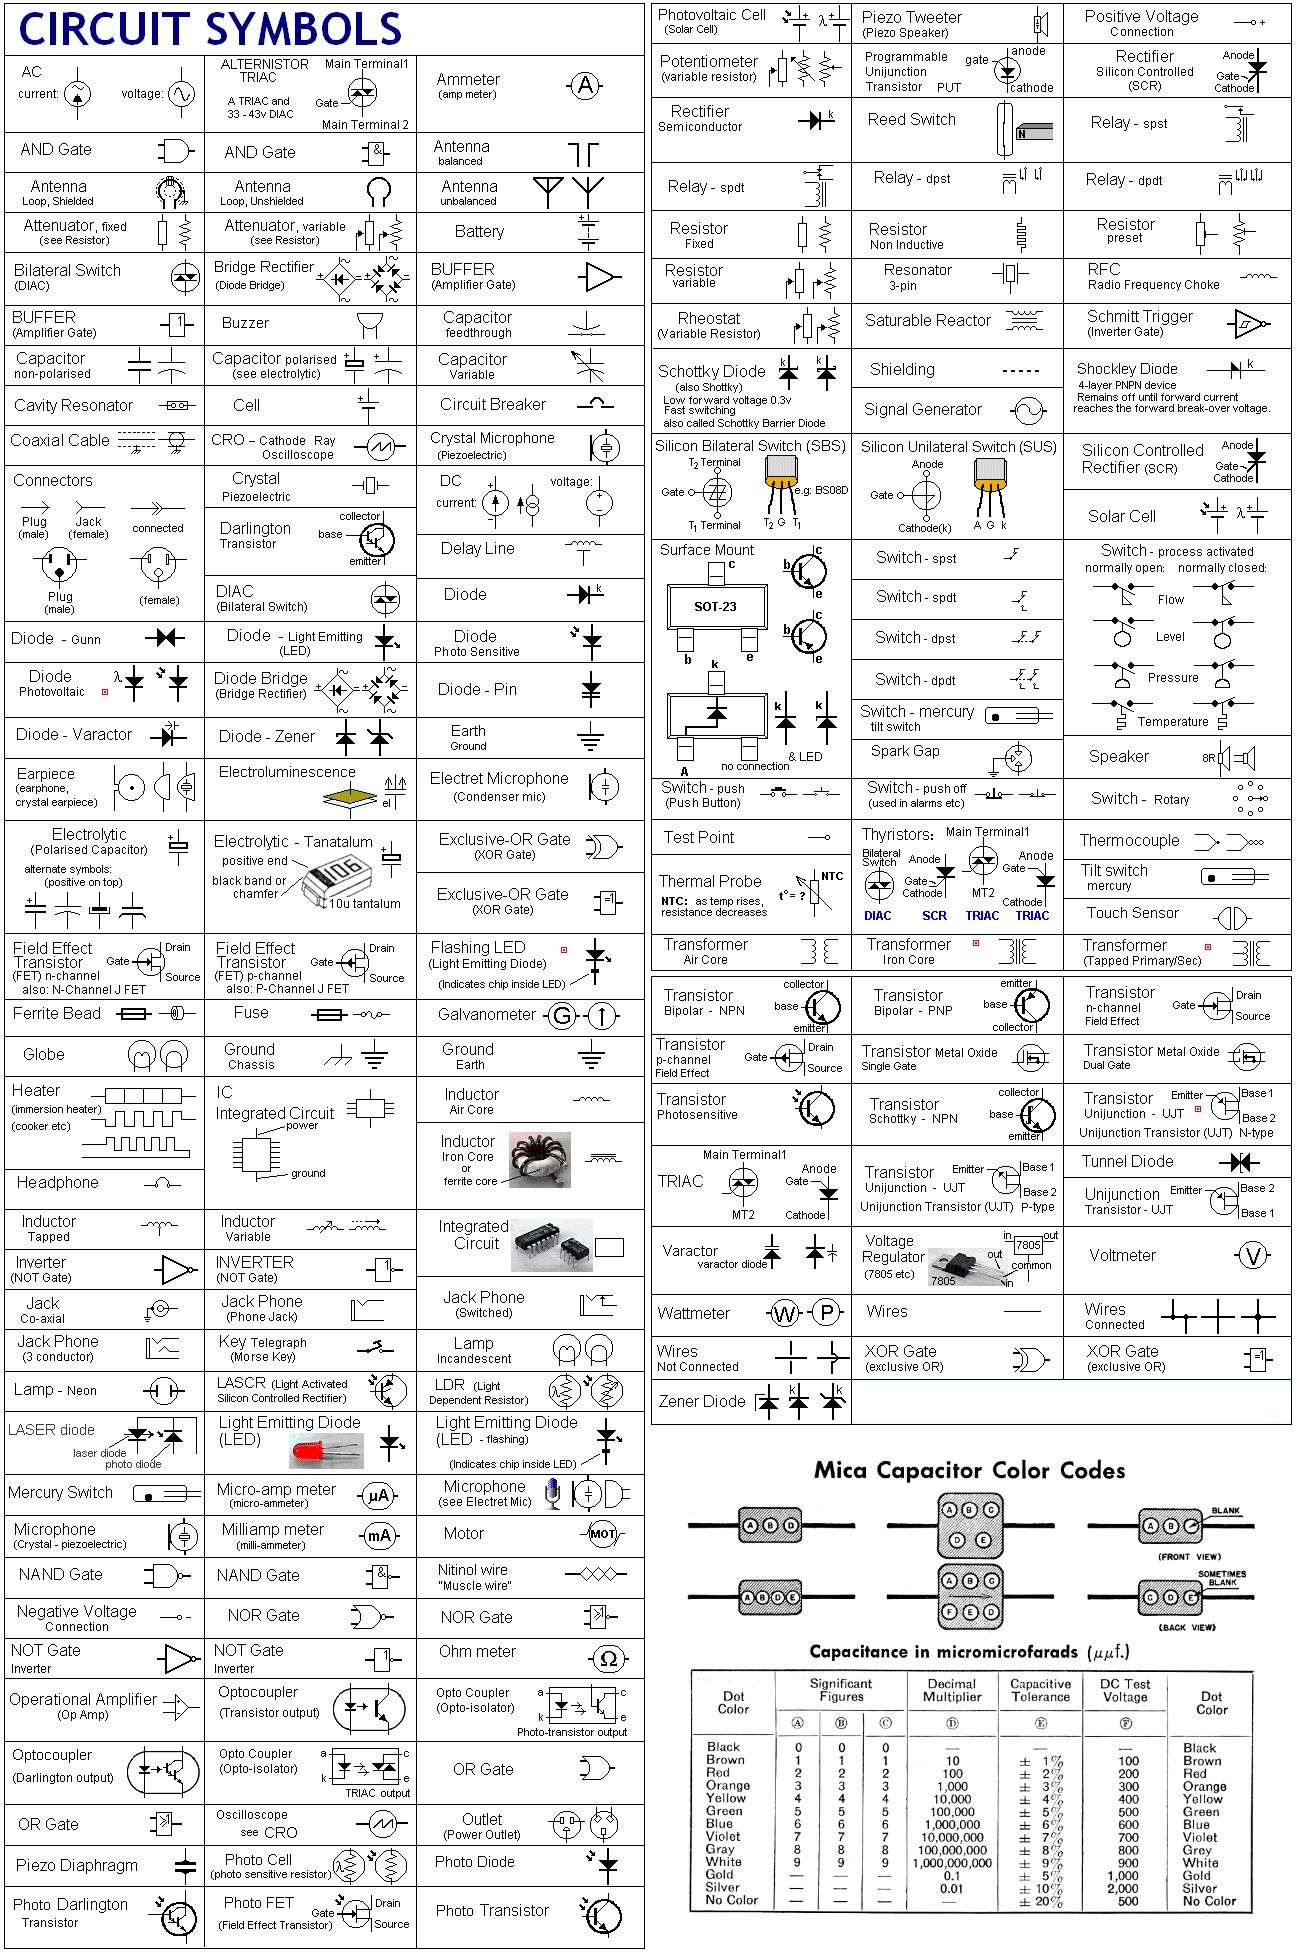 6c64fb84c8e162b28334051891c290f4 schematic symbols chart electric circuit symbols a considerably wiring diagram symbols chart at gsmportal.co